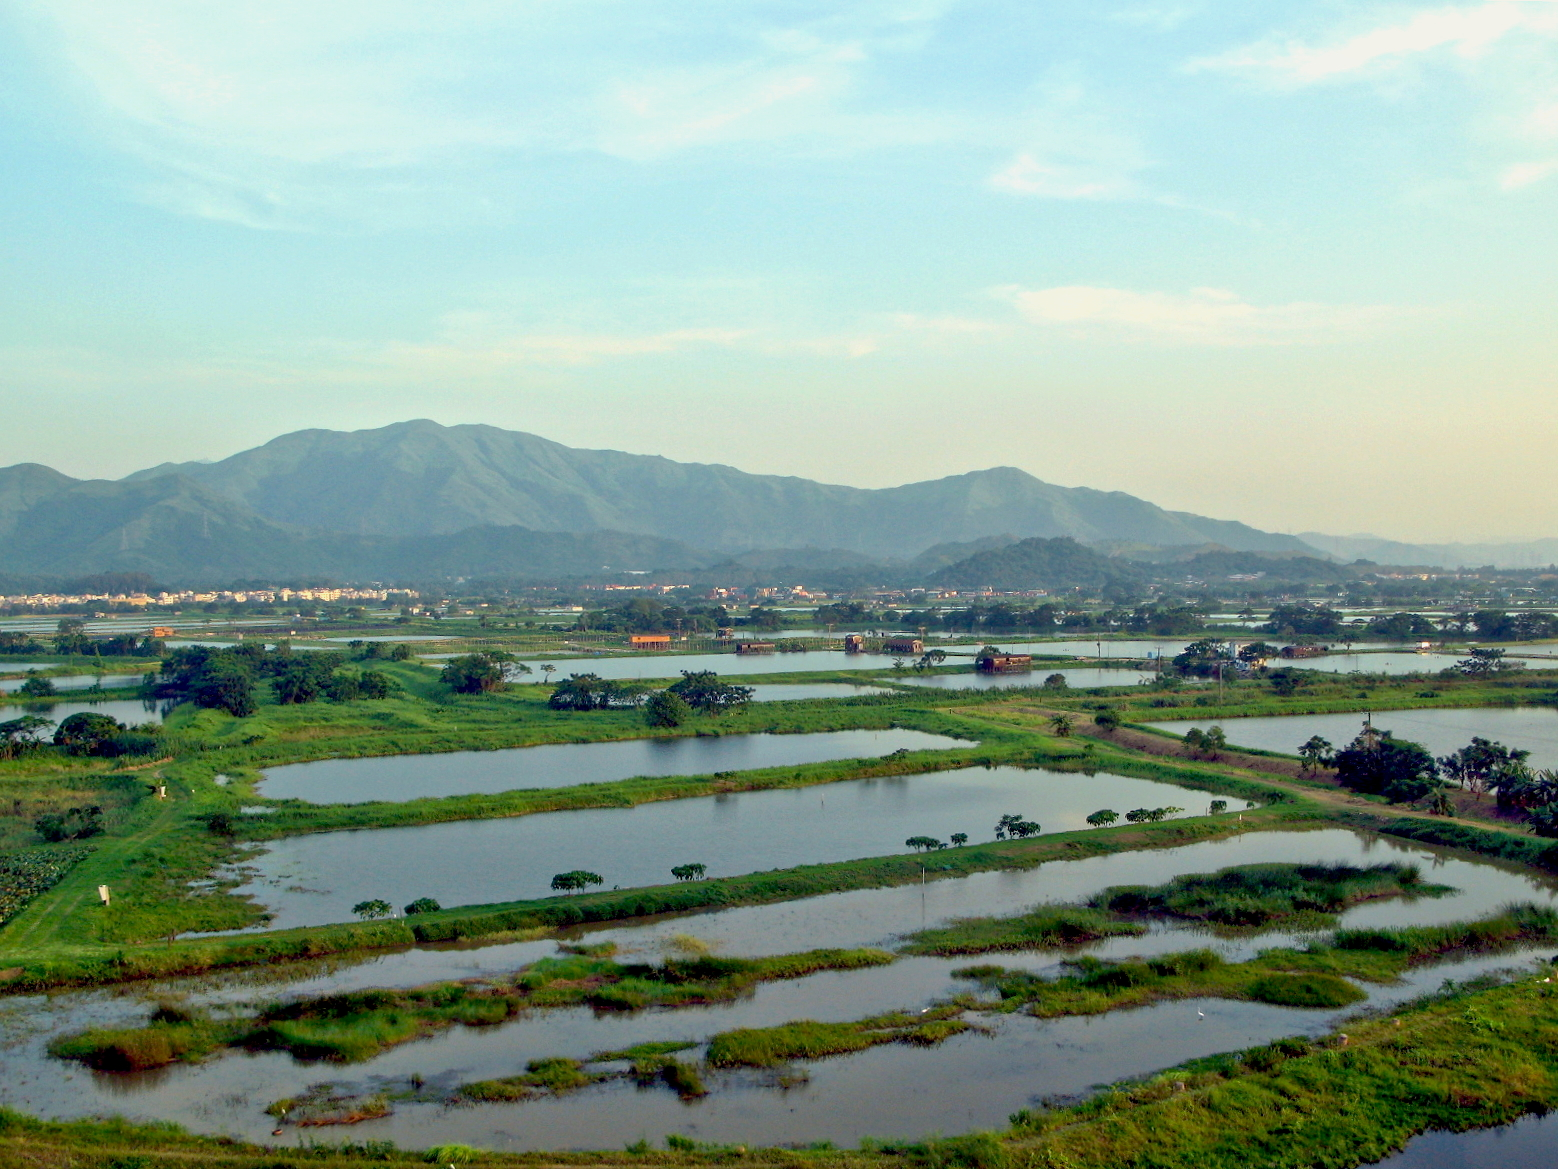 Lok Ma Chau- better air quality due to large area of wetland